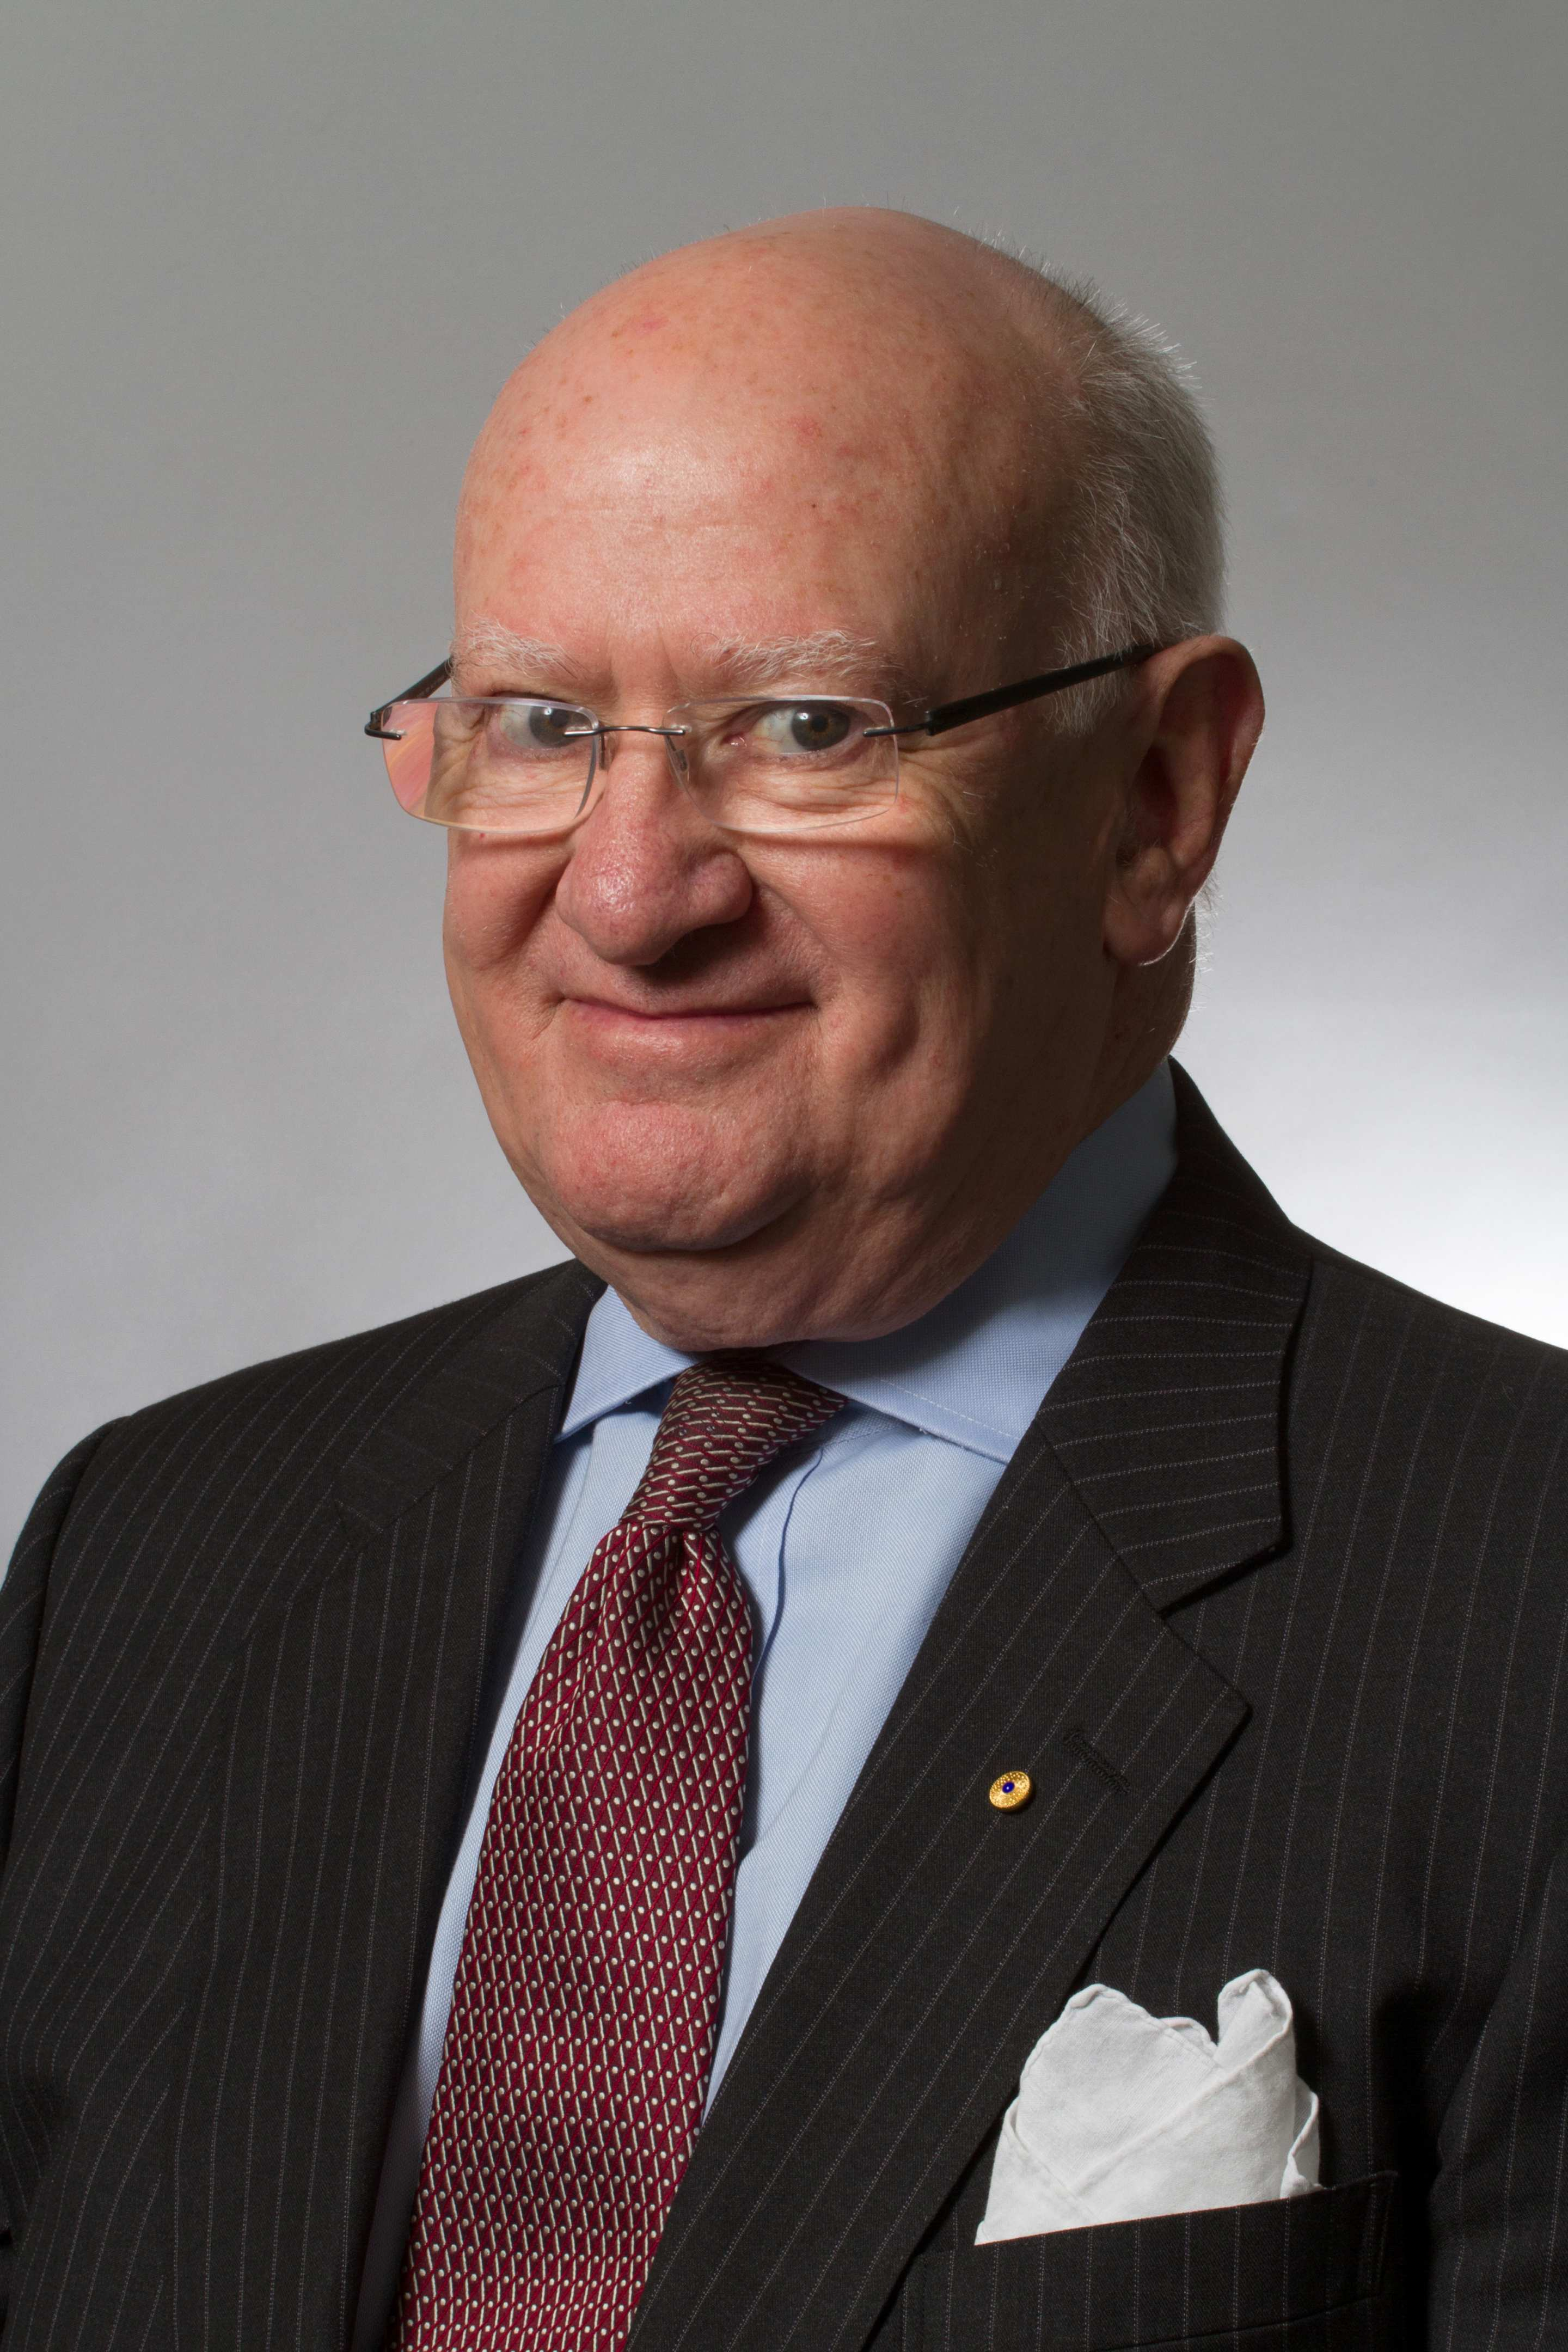 University of Sydney General Counsel Richard Fisher AM.